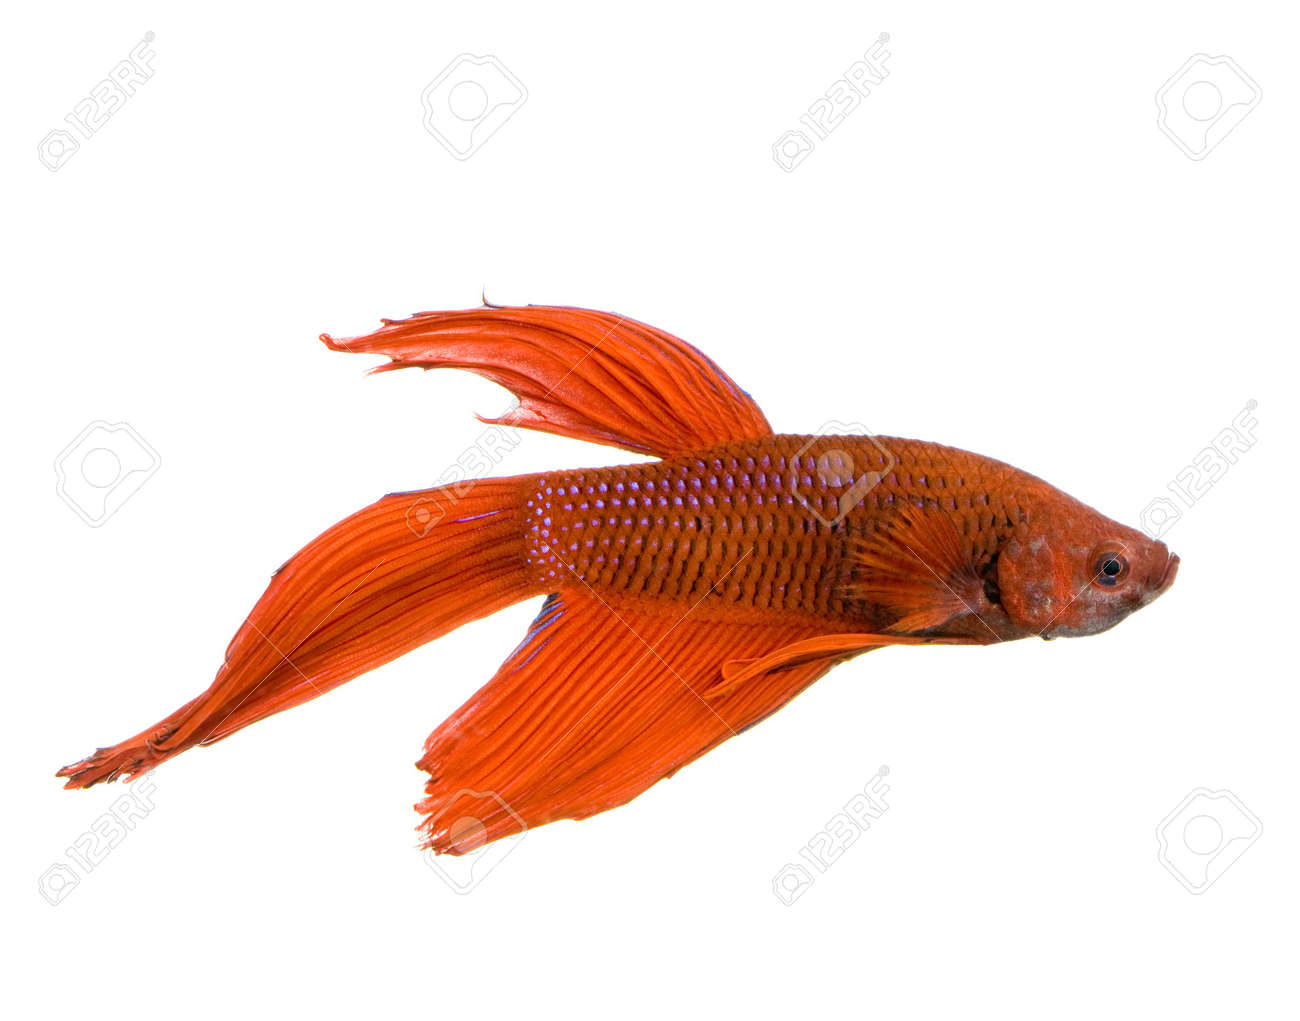 shot of a red Siamese fighting fish under water in front of a white background Stock Photo - 1132228